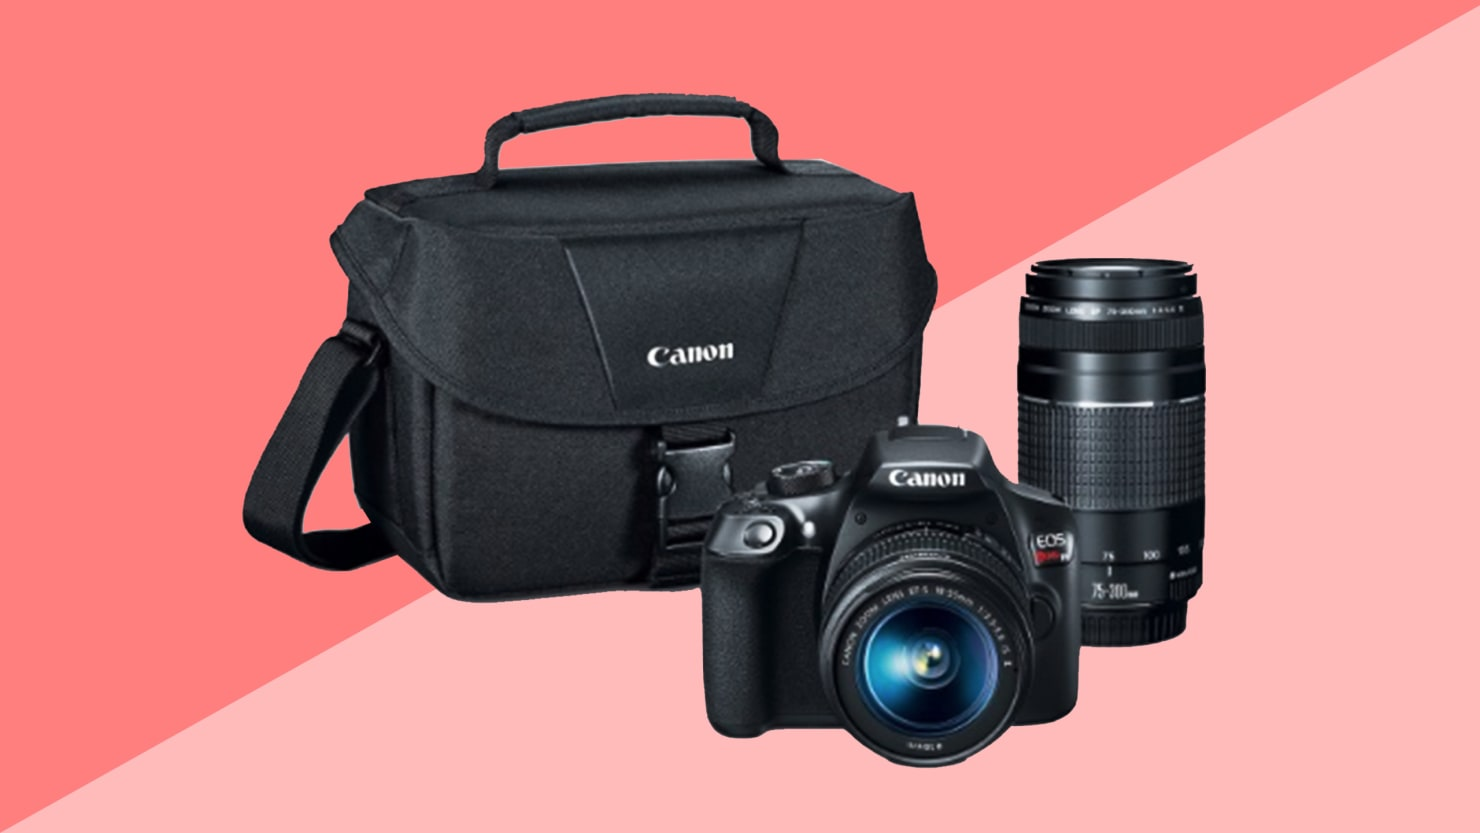 Get This Canon Eos Rebel T6 Camera And Lens Kit On Sale For 399